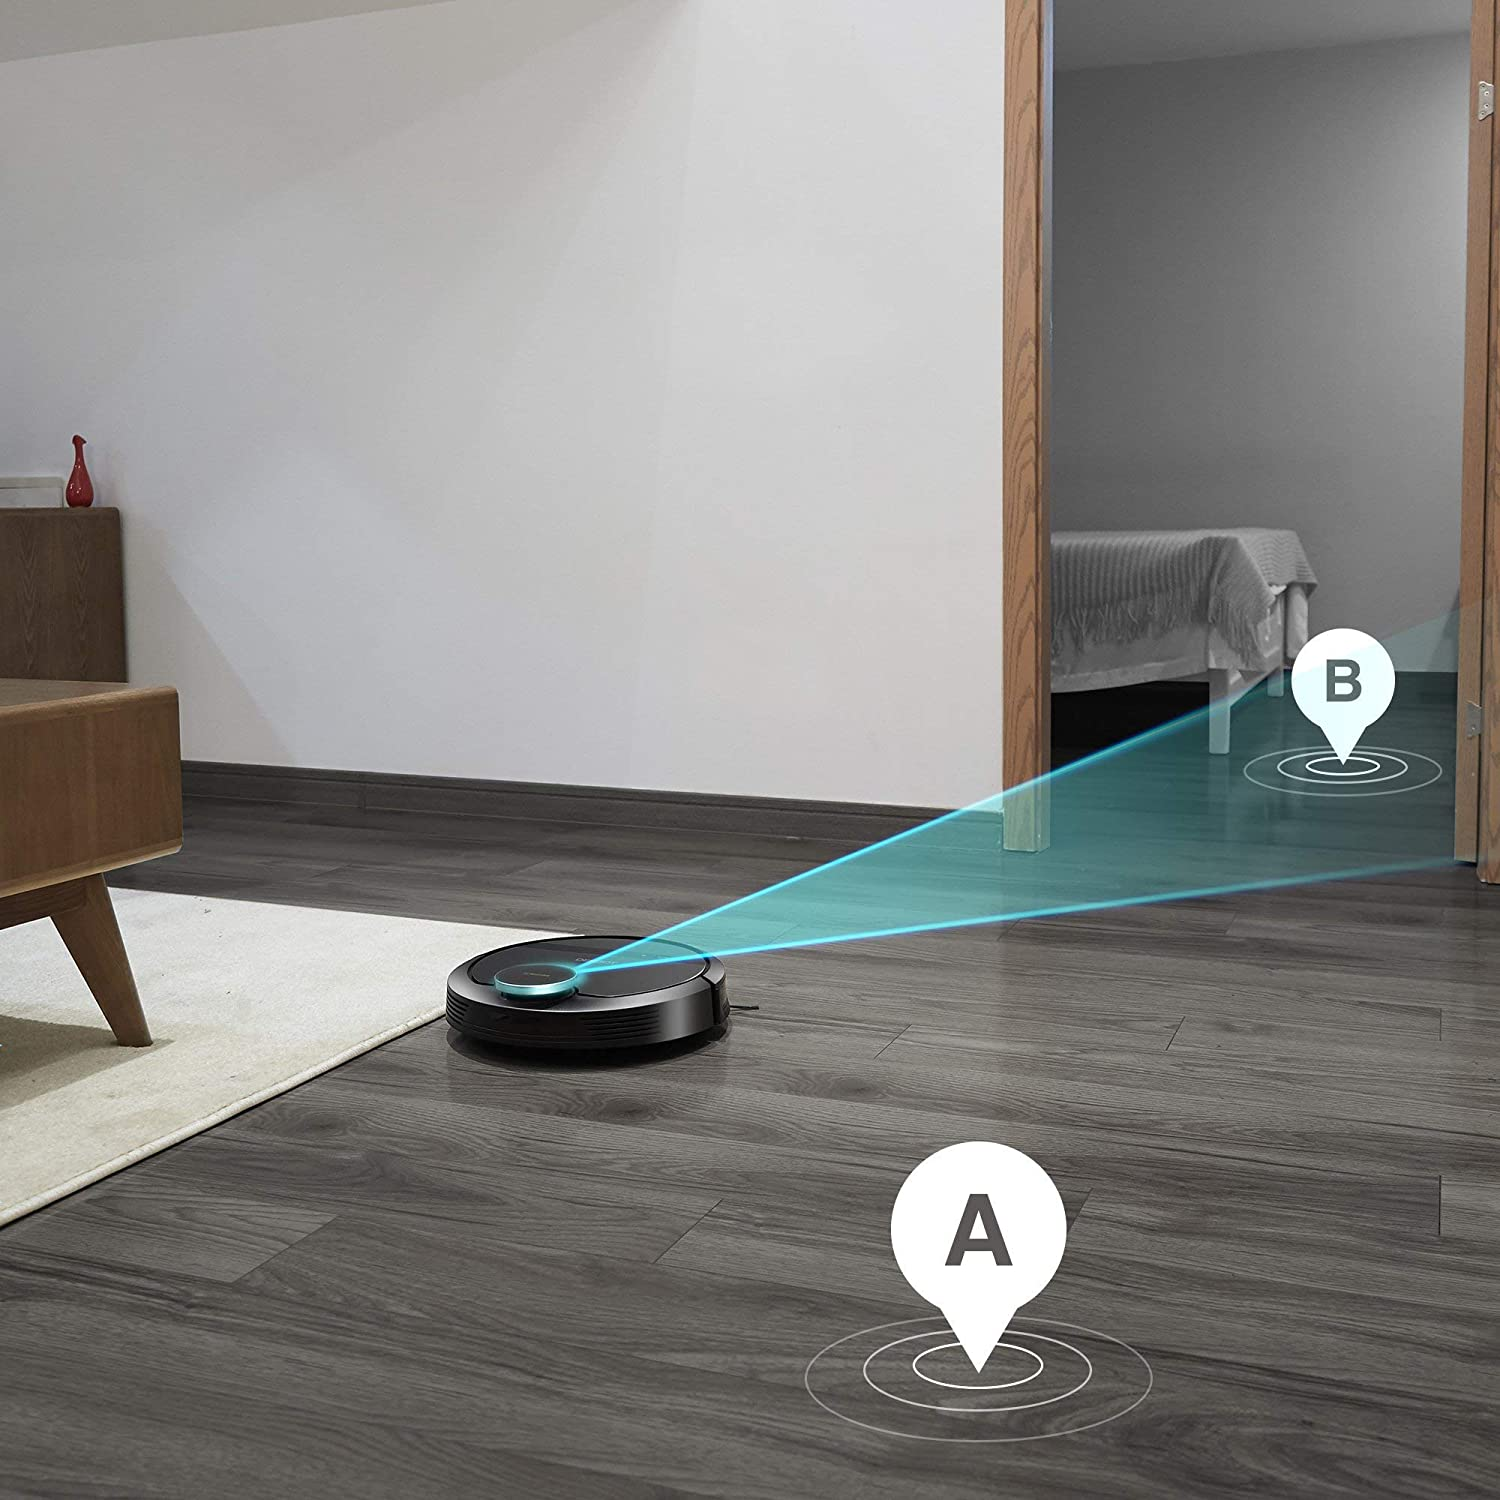 Renewed ECOVACS DEEBOT 901 Smart Robotic Vacuum for Carpet with Mapping Technology Higher Suction Power Pet Hair WiFi Connected with Alexa and Google Bare Floors